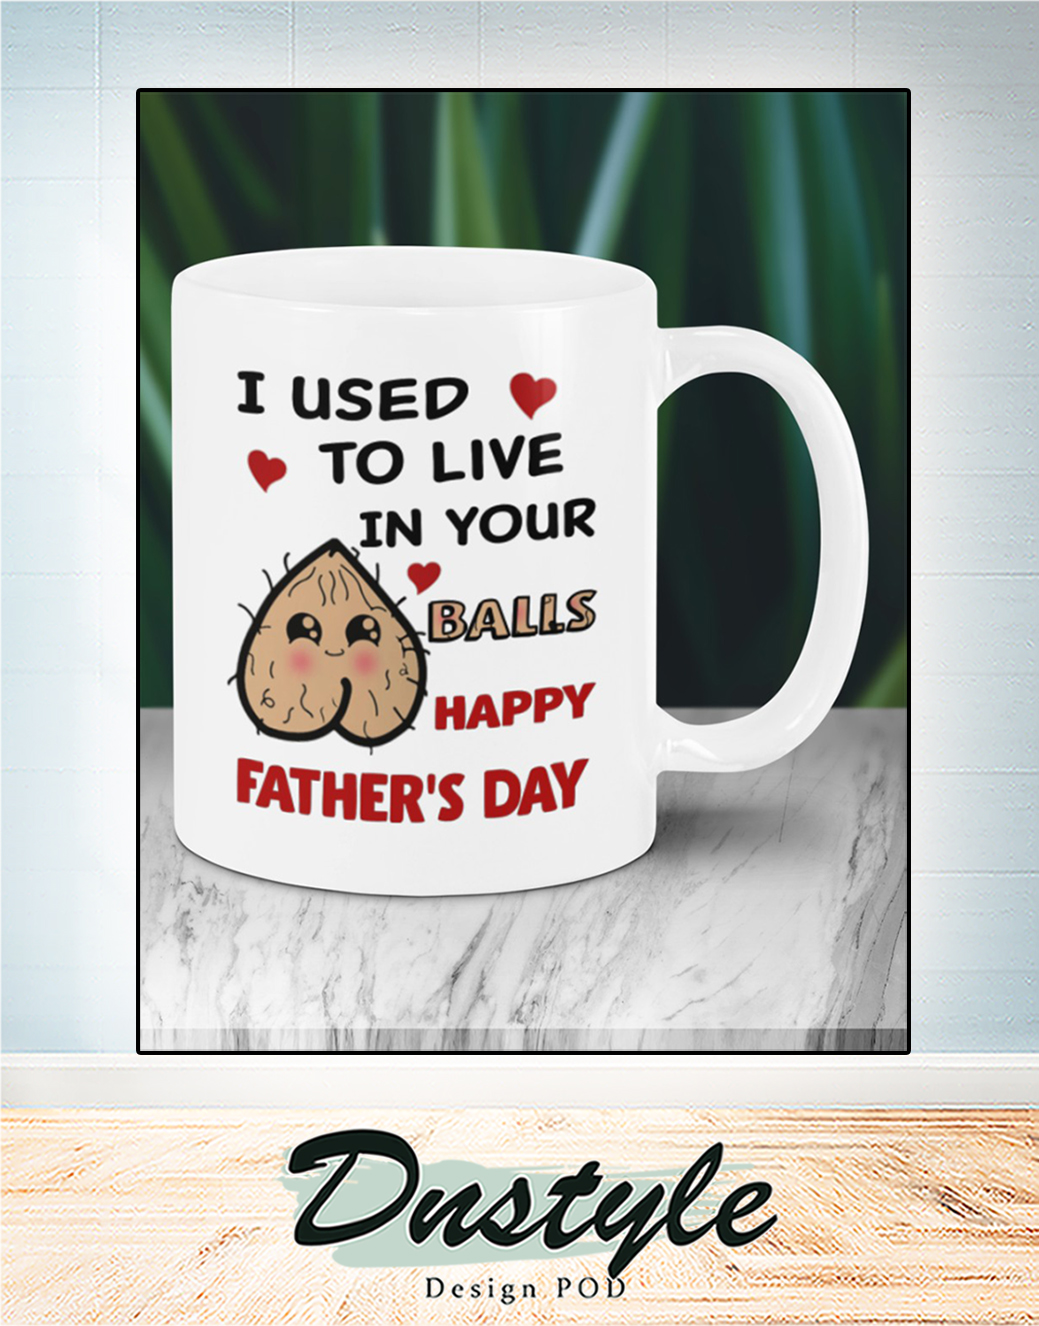 I used to live in your balls happy father's day mug 2